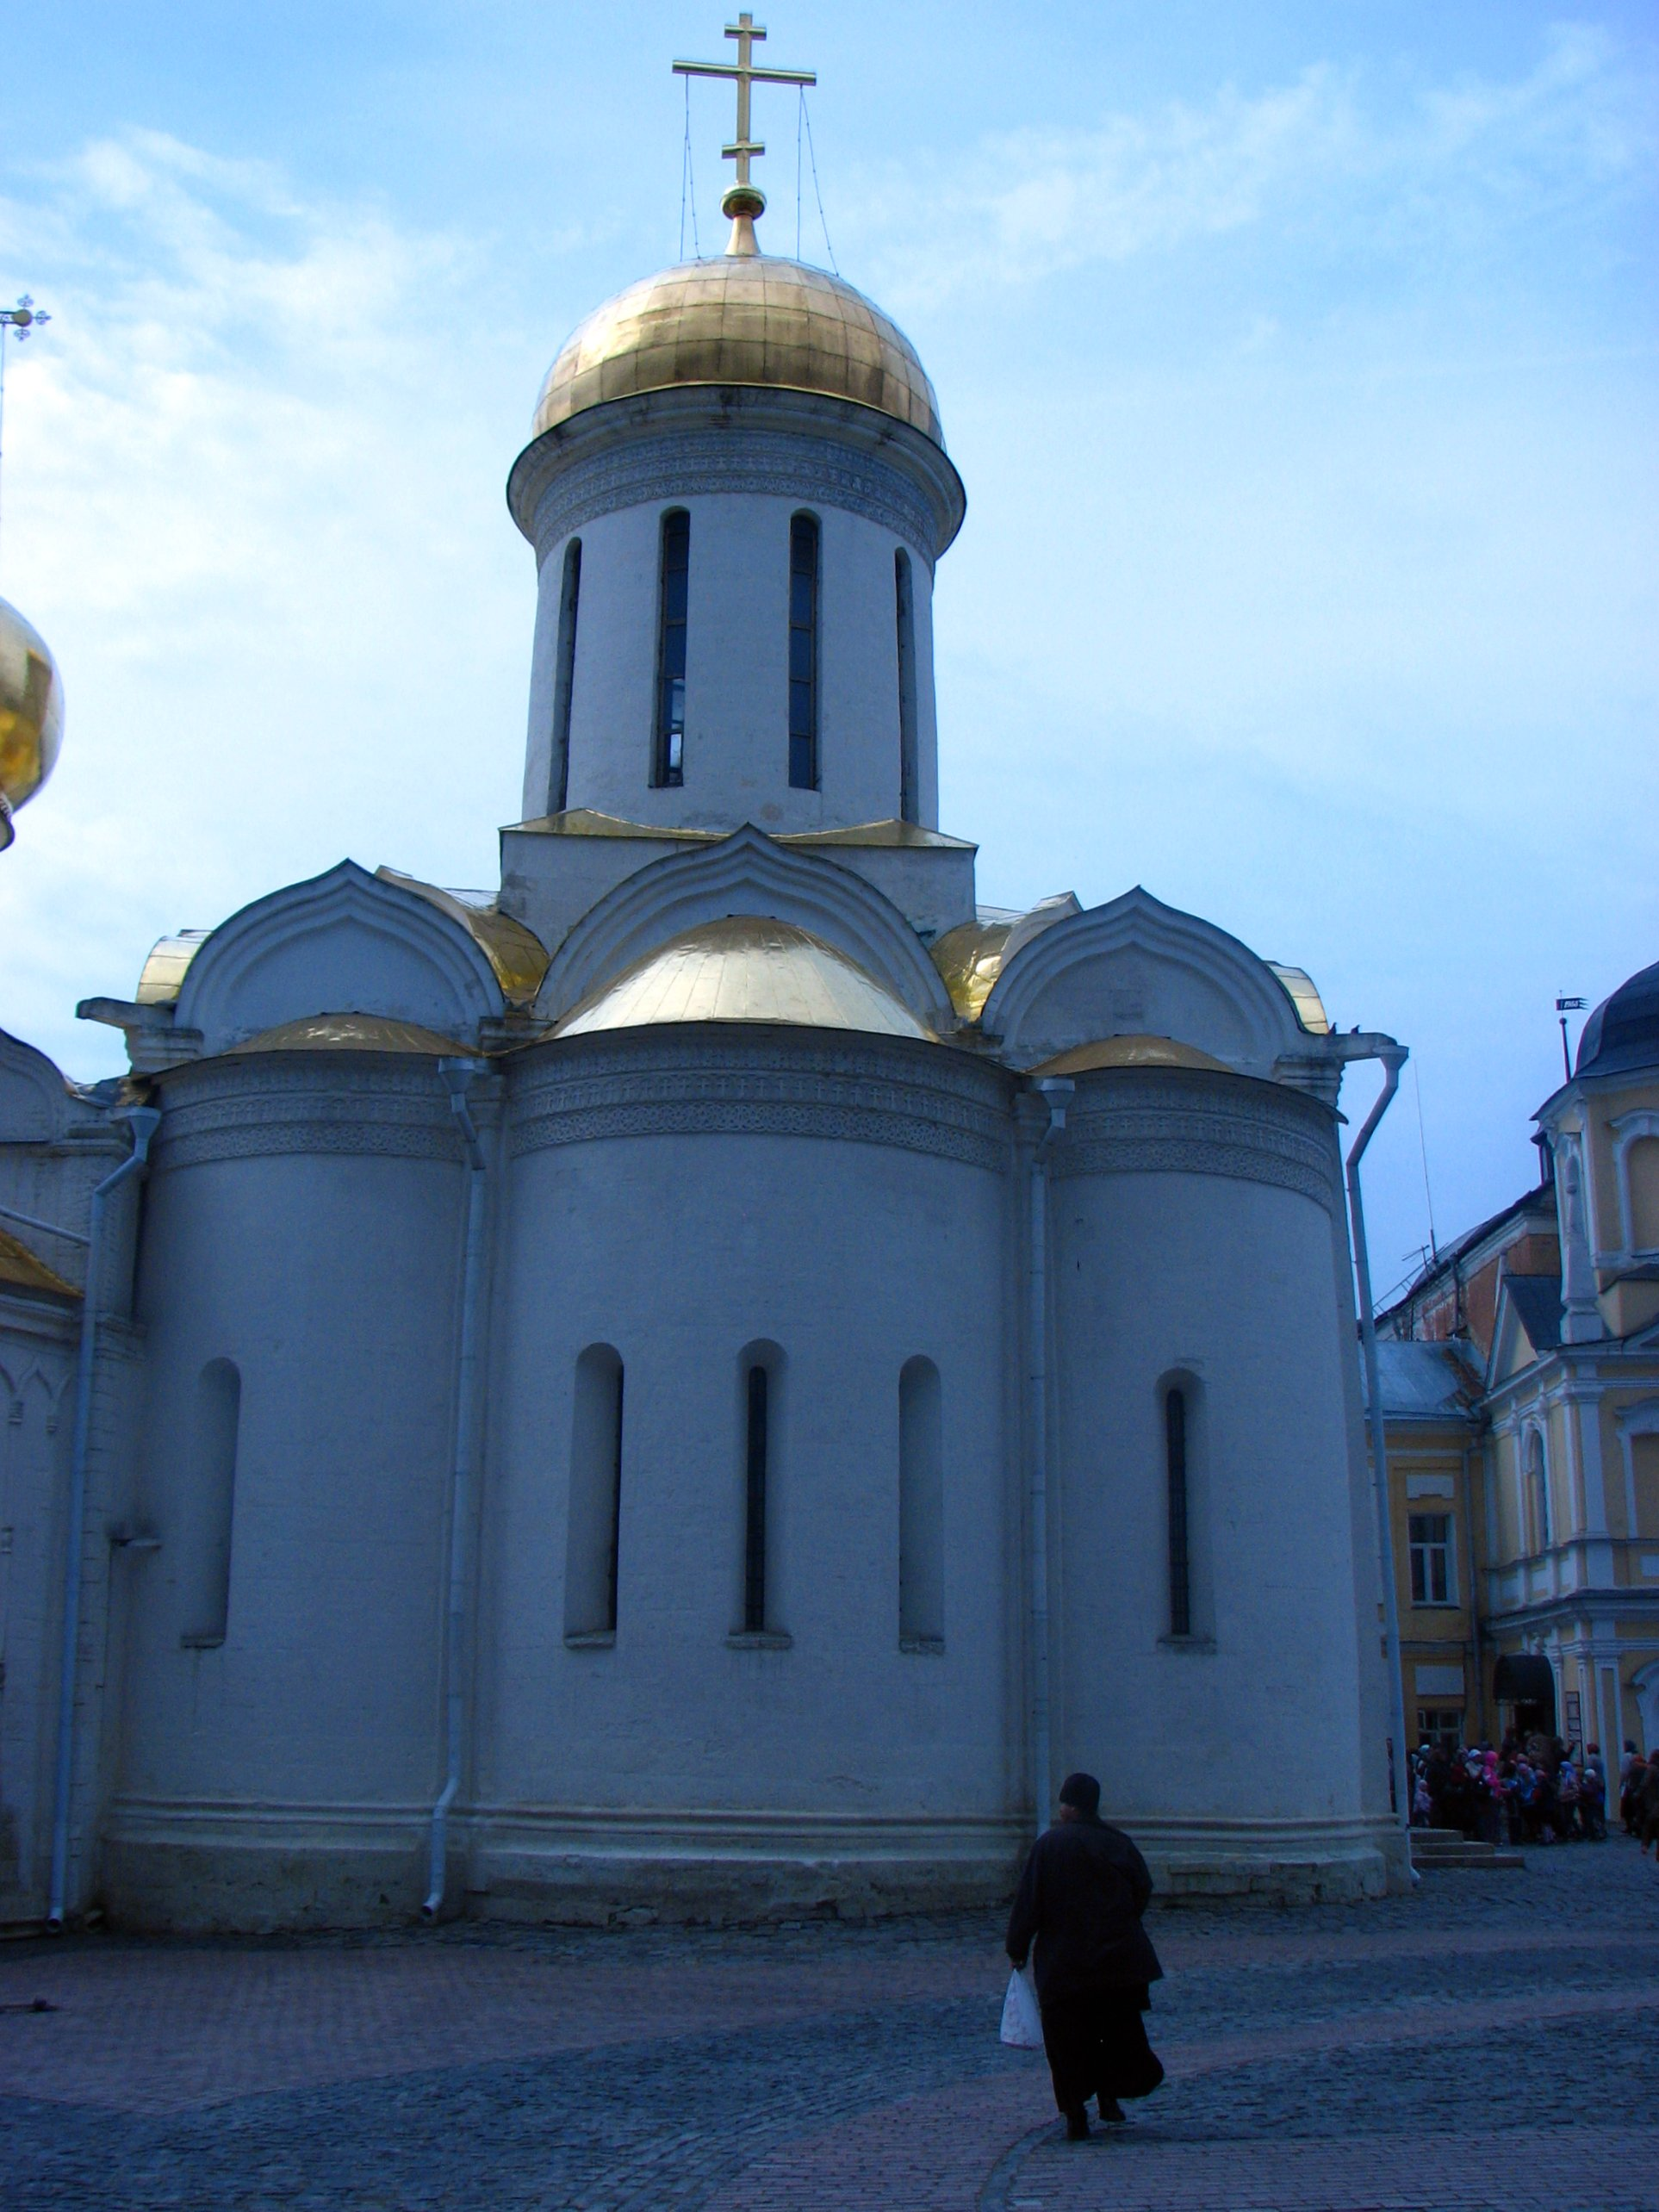 Sergiyev Posad Russia  city images : Church in Sergiyev Posad, Russia Wikimedia Commons